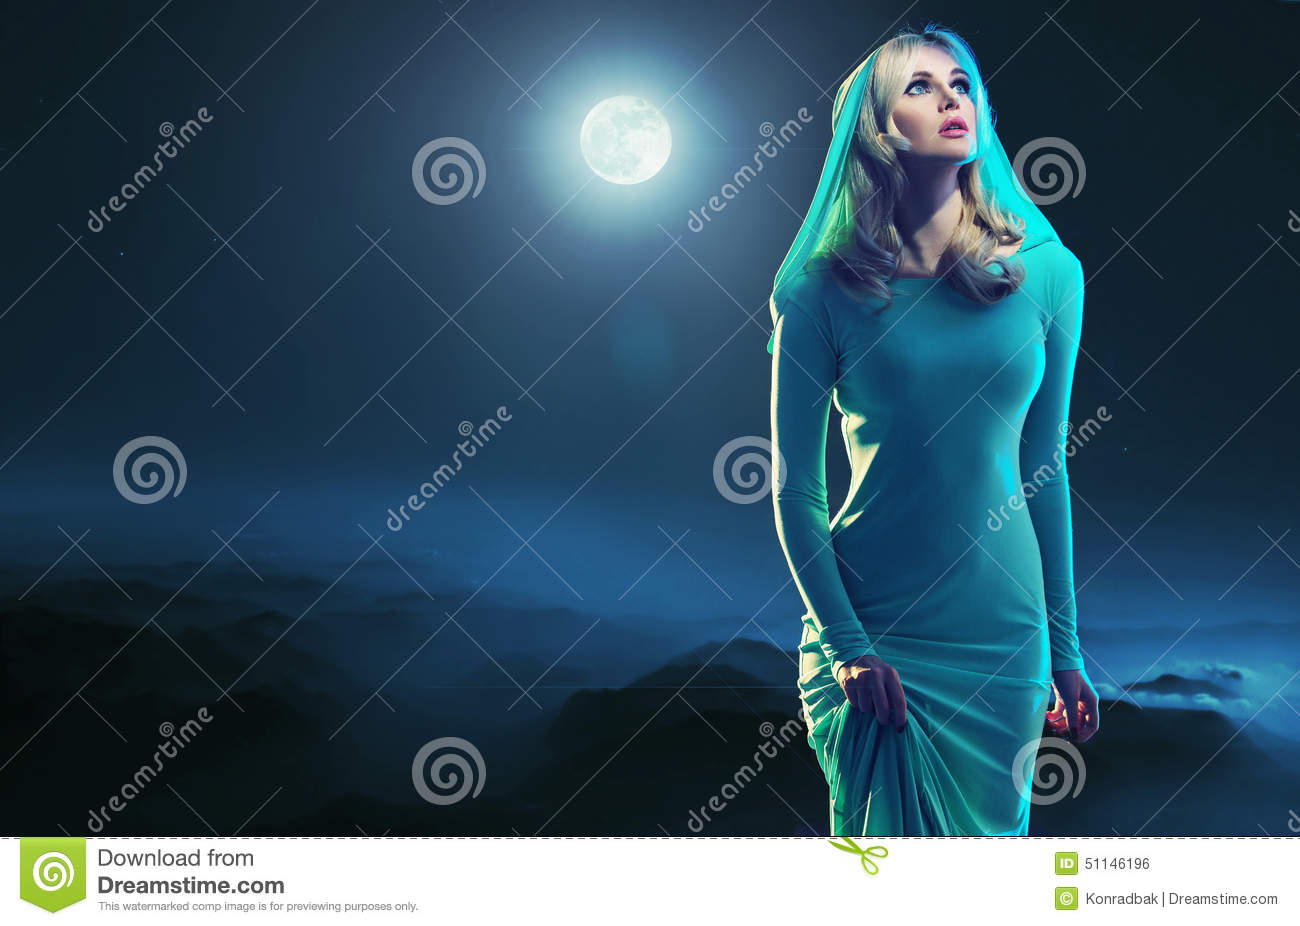 Portrait of an young woman over the moon